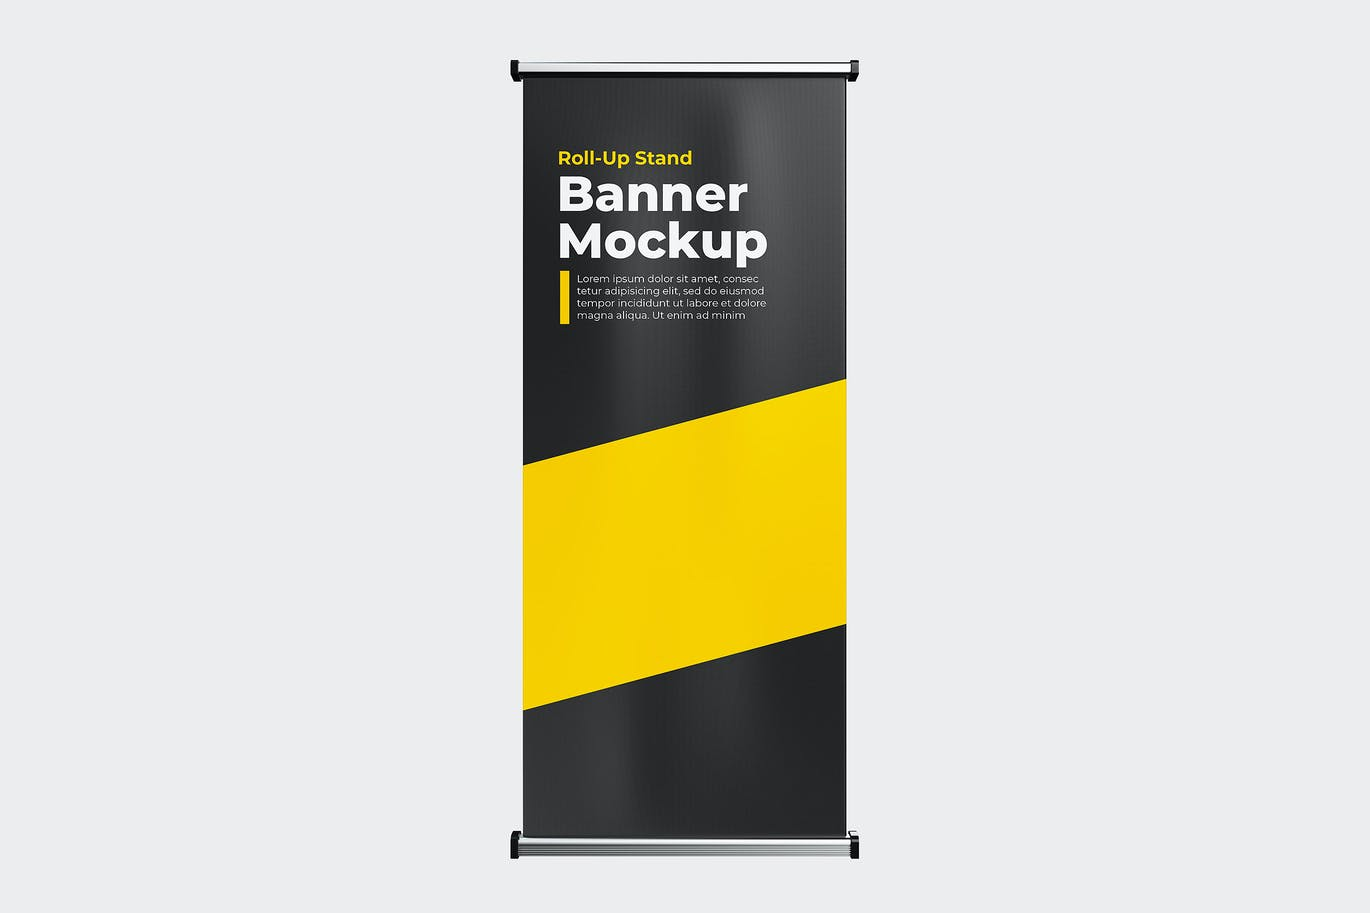 Roll-up stand banner mock-up template